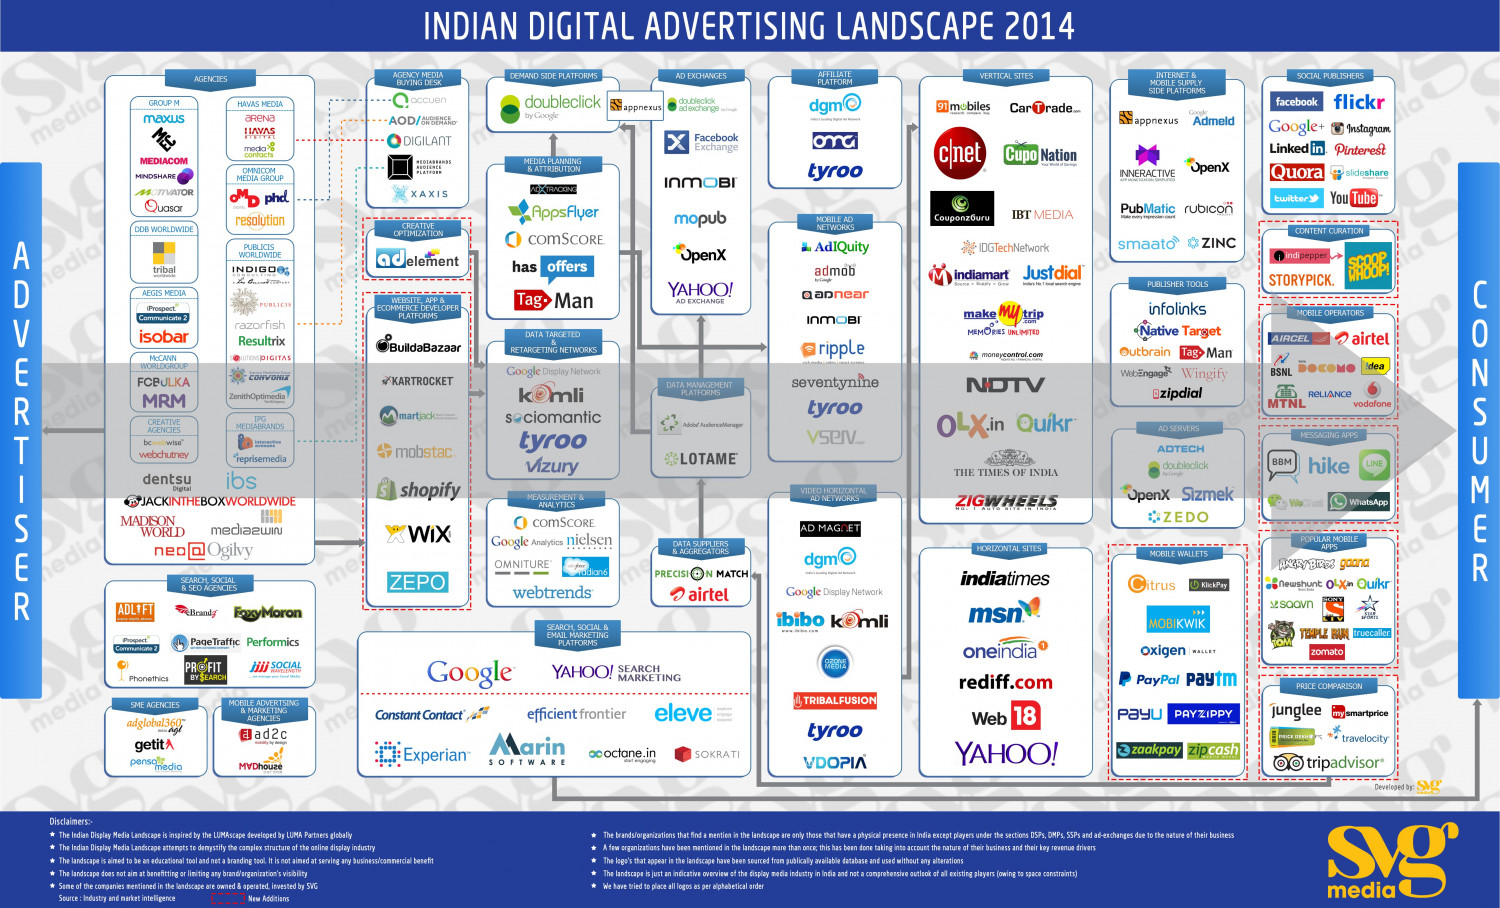 Indian Digital Advertising Landscape 2014 hits the ad-tech World Infographic